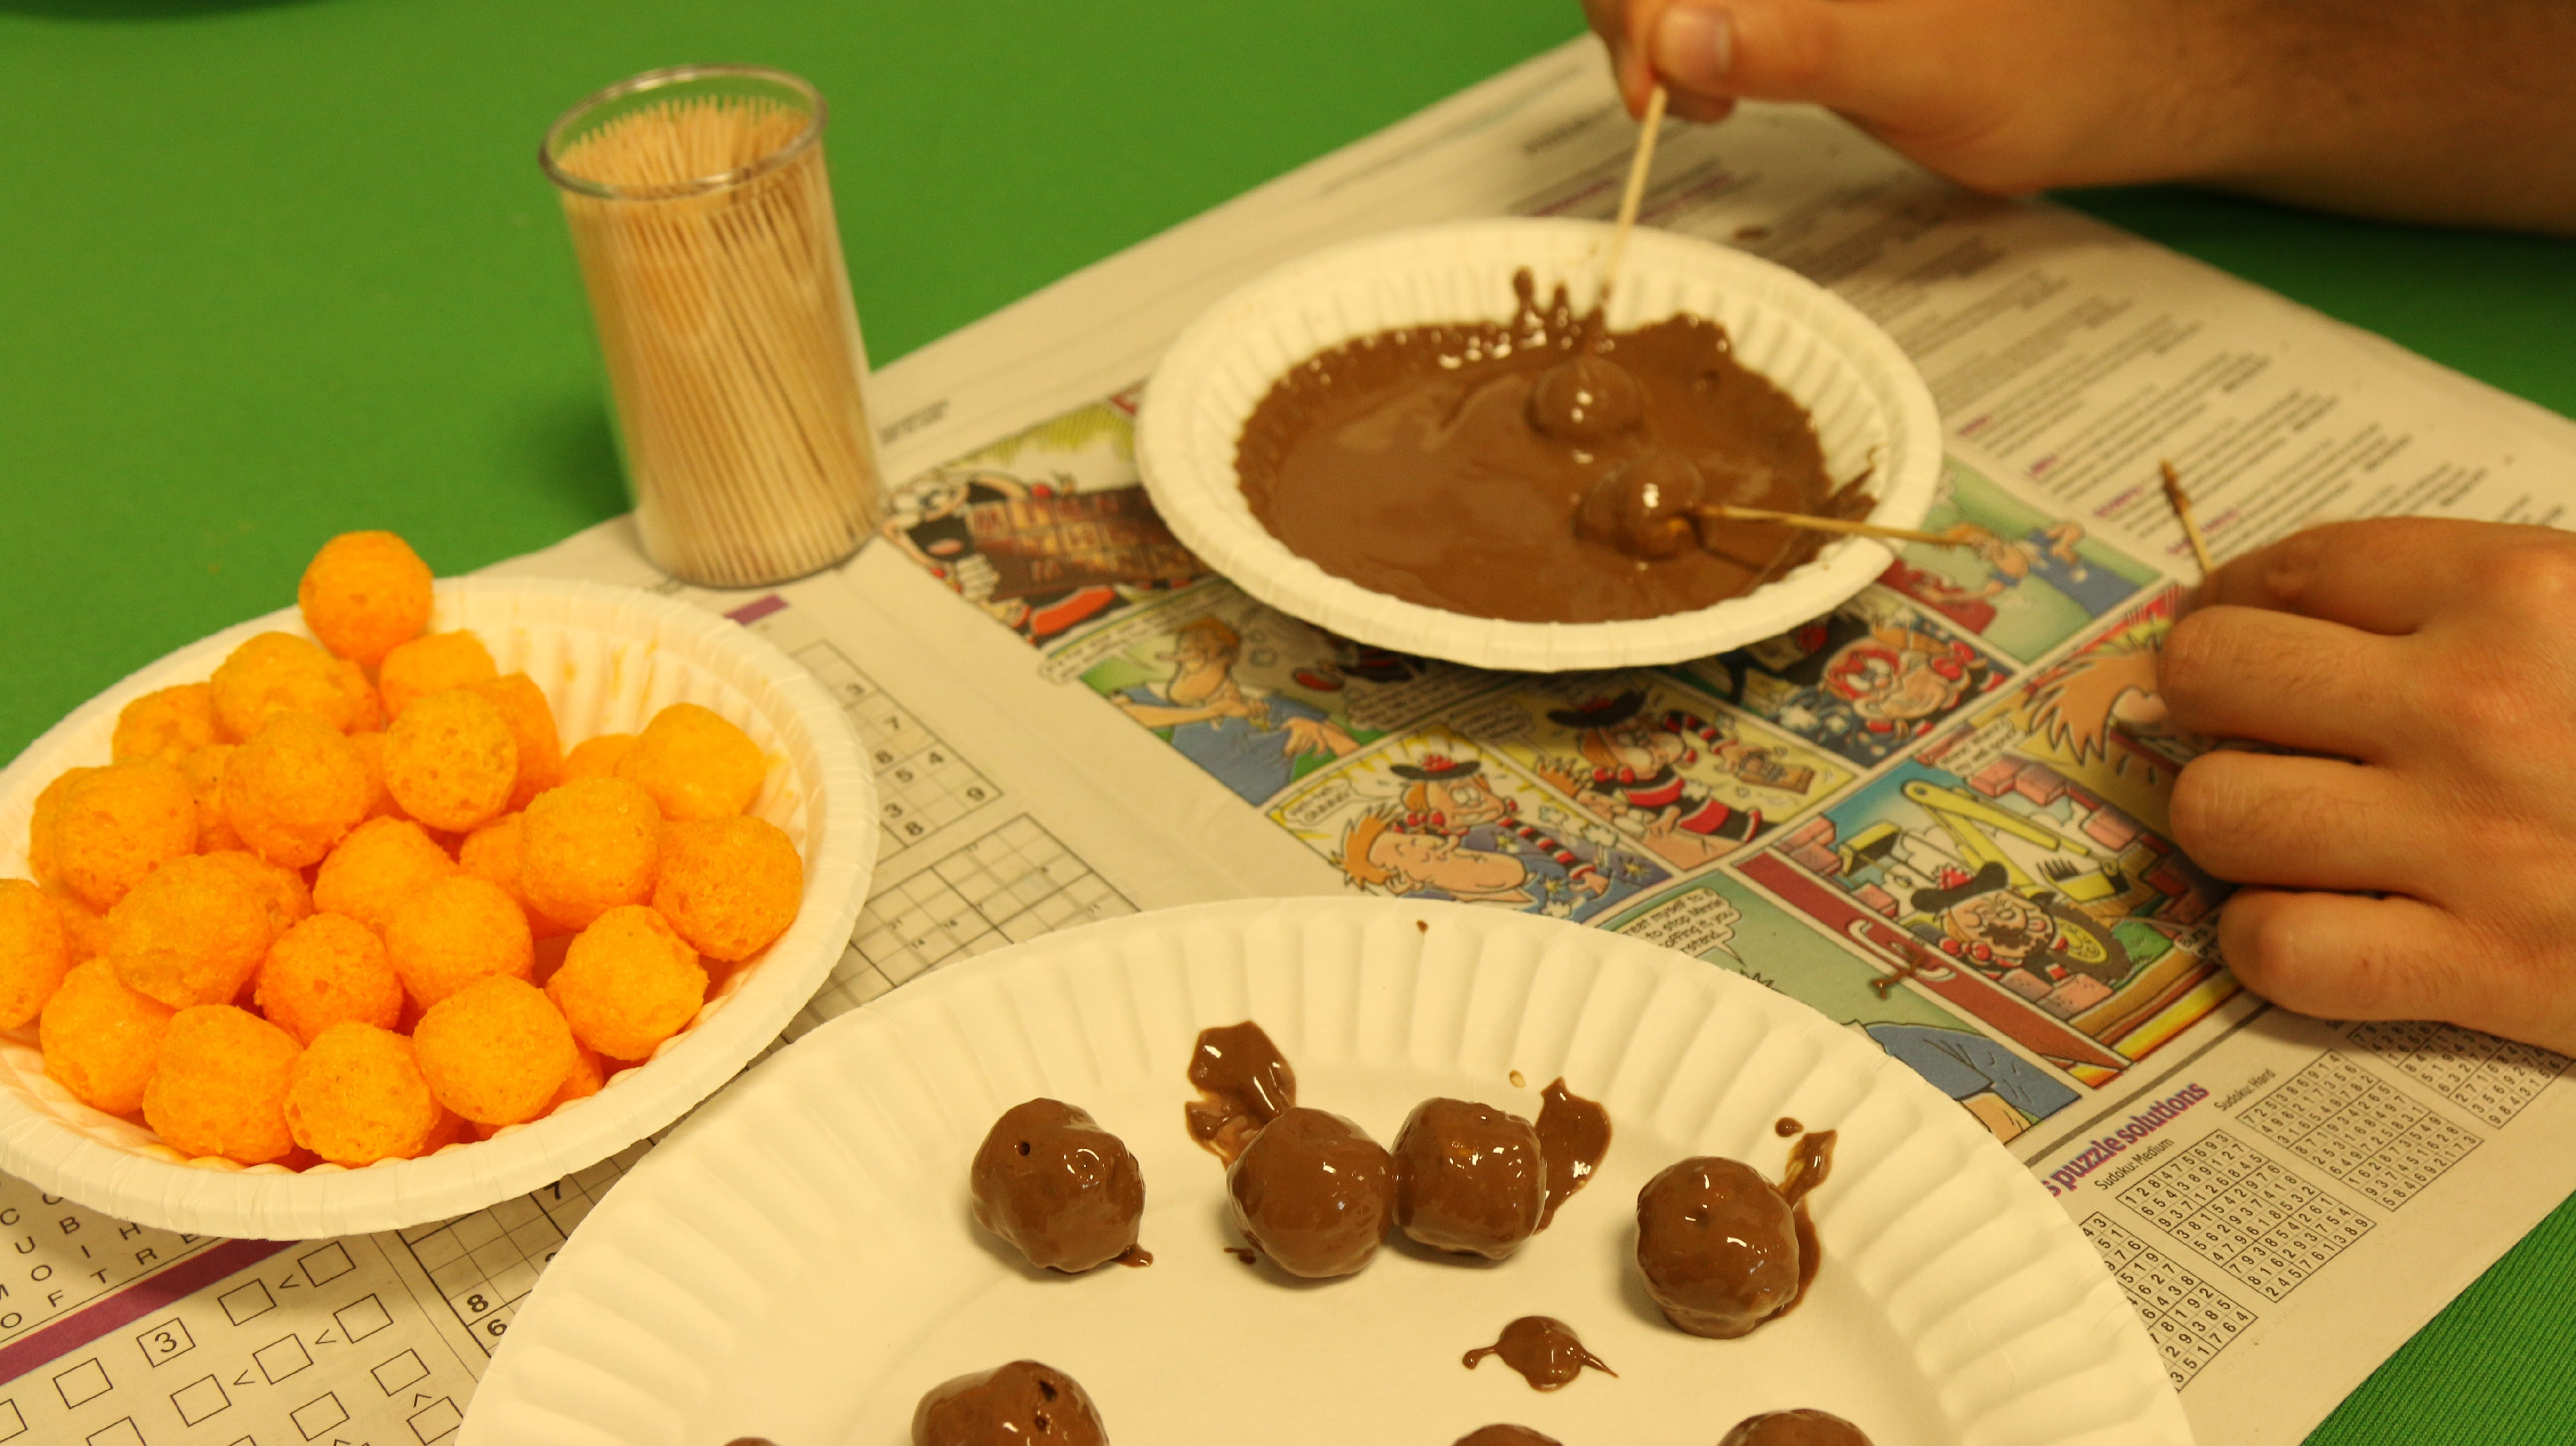 Cover the cheese puffs all over with chocolate, one by one, and let them settle on another plate or tray.